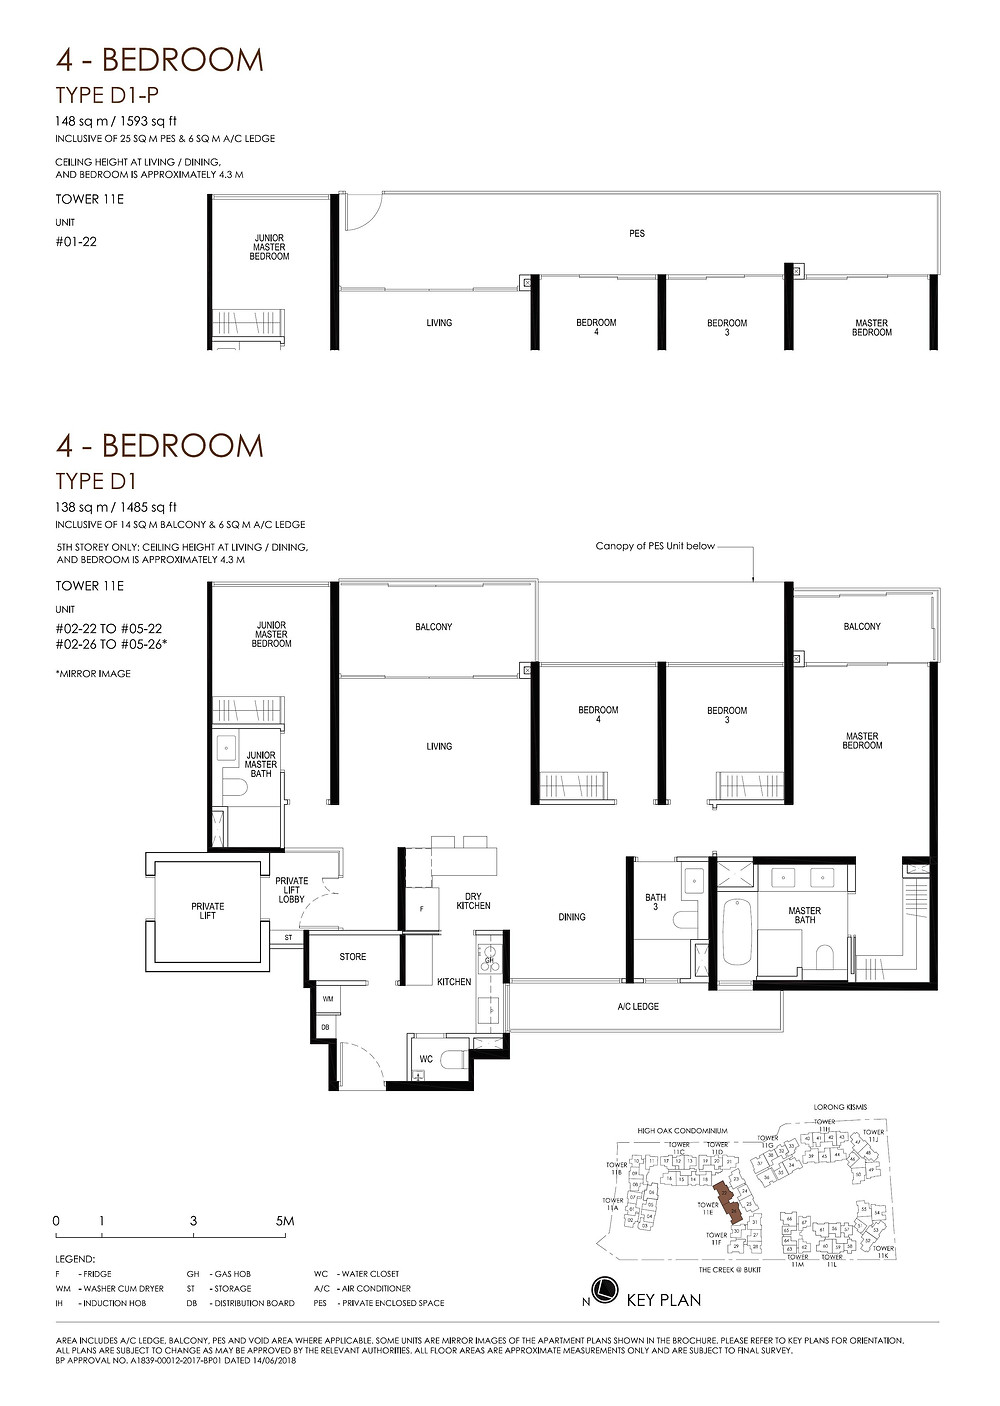 Daintree Residence 4BR (Private Lift) Floor Plan